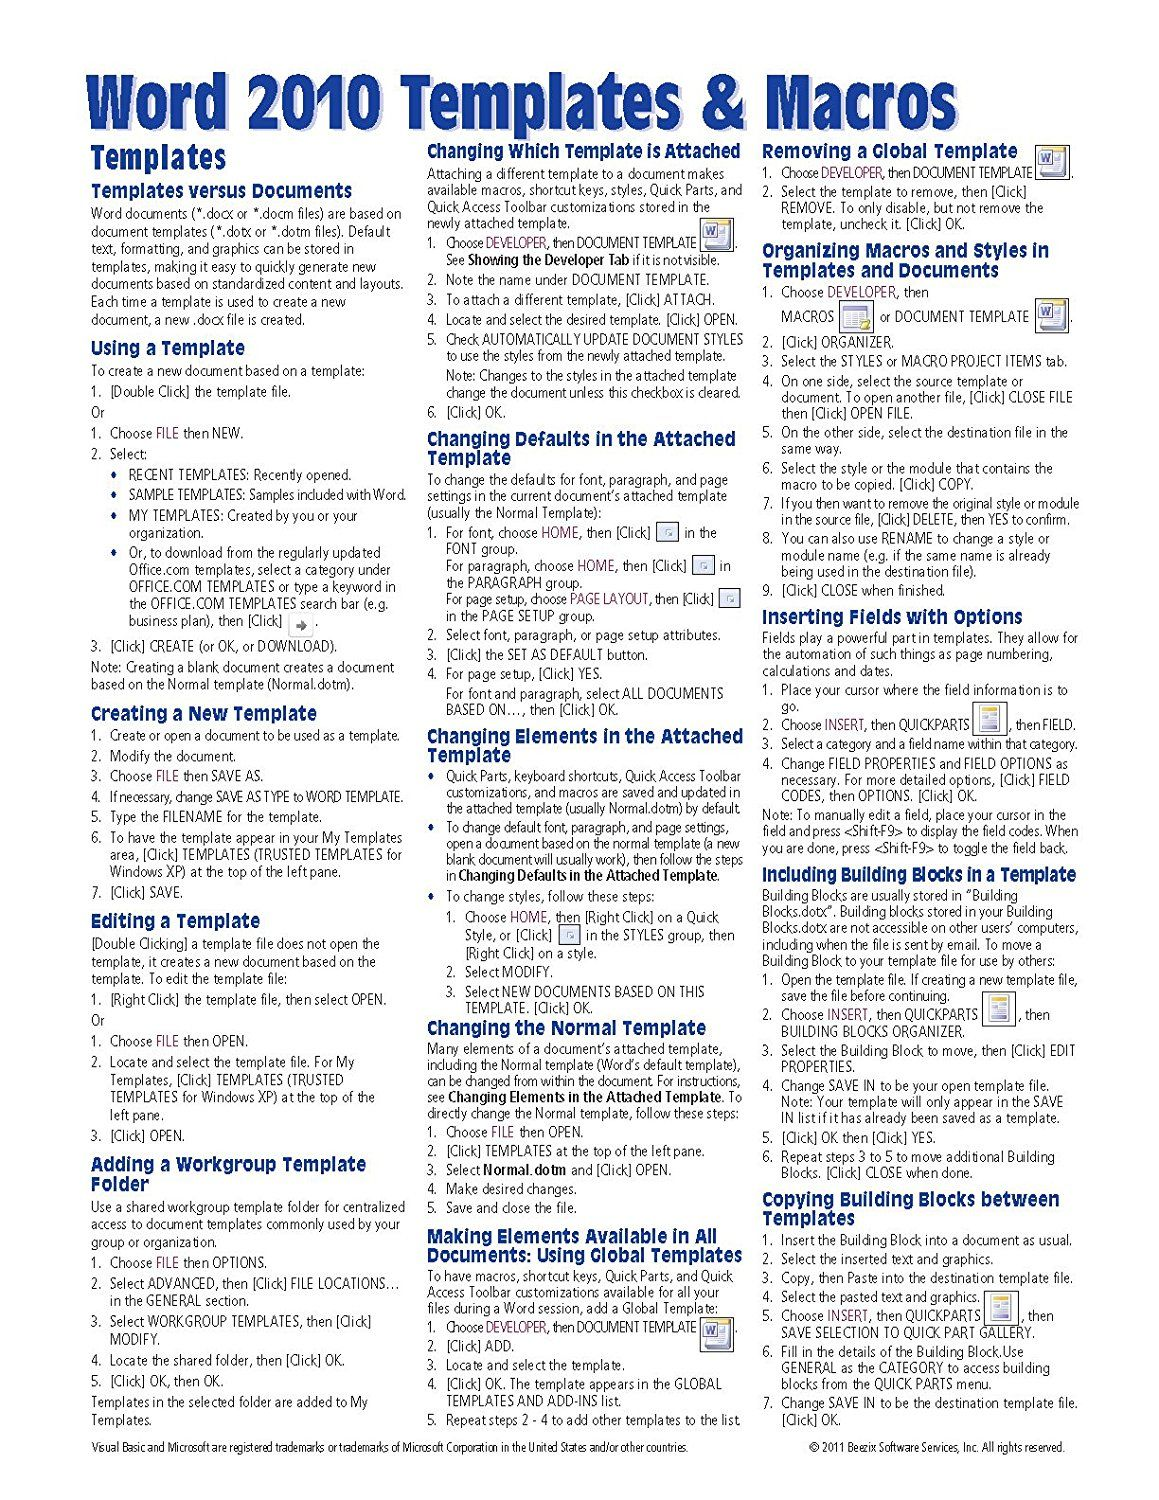 Microsoft Word 2010 Templates Amp Macros Quick Reference Guide Cheat Sheet Of Instructions Tips Amp Shortcuts L Microsoft Word 2010 Word Template Words